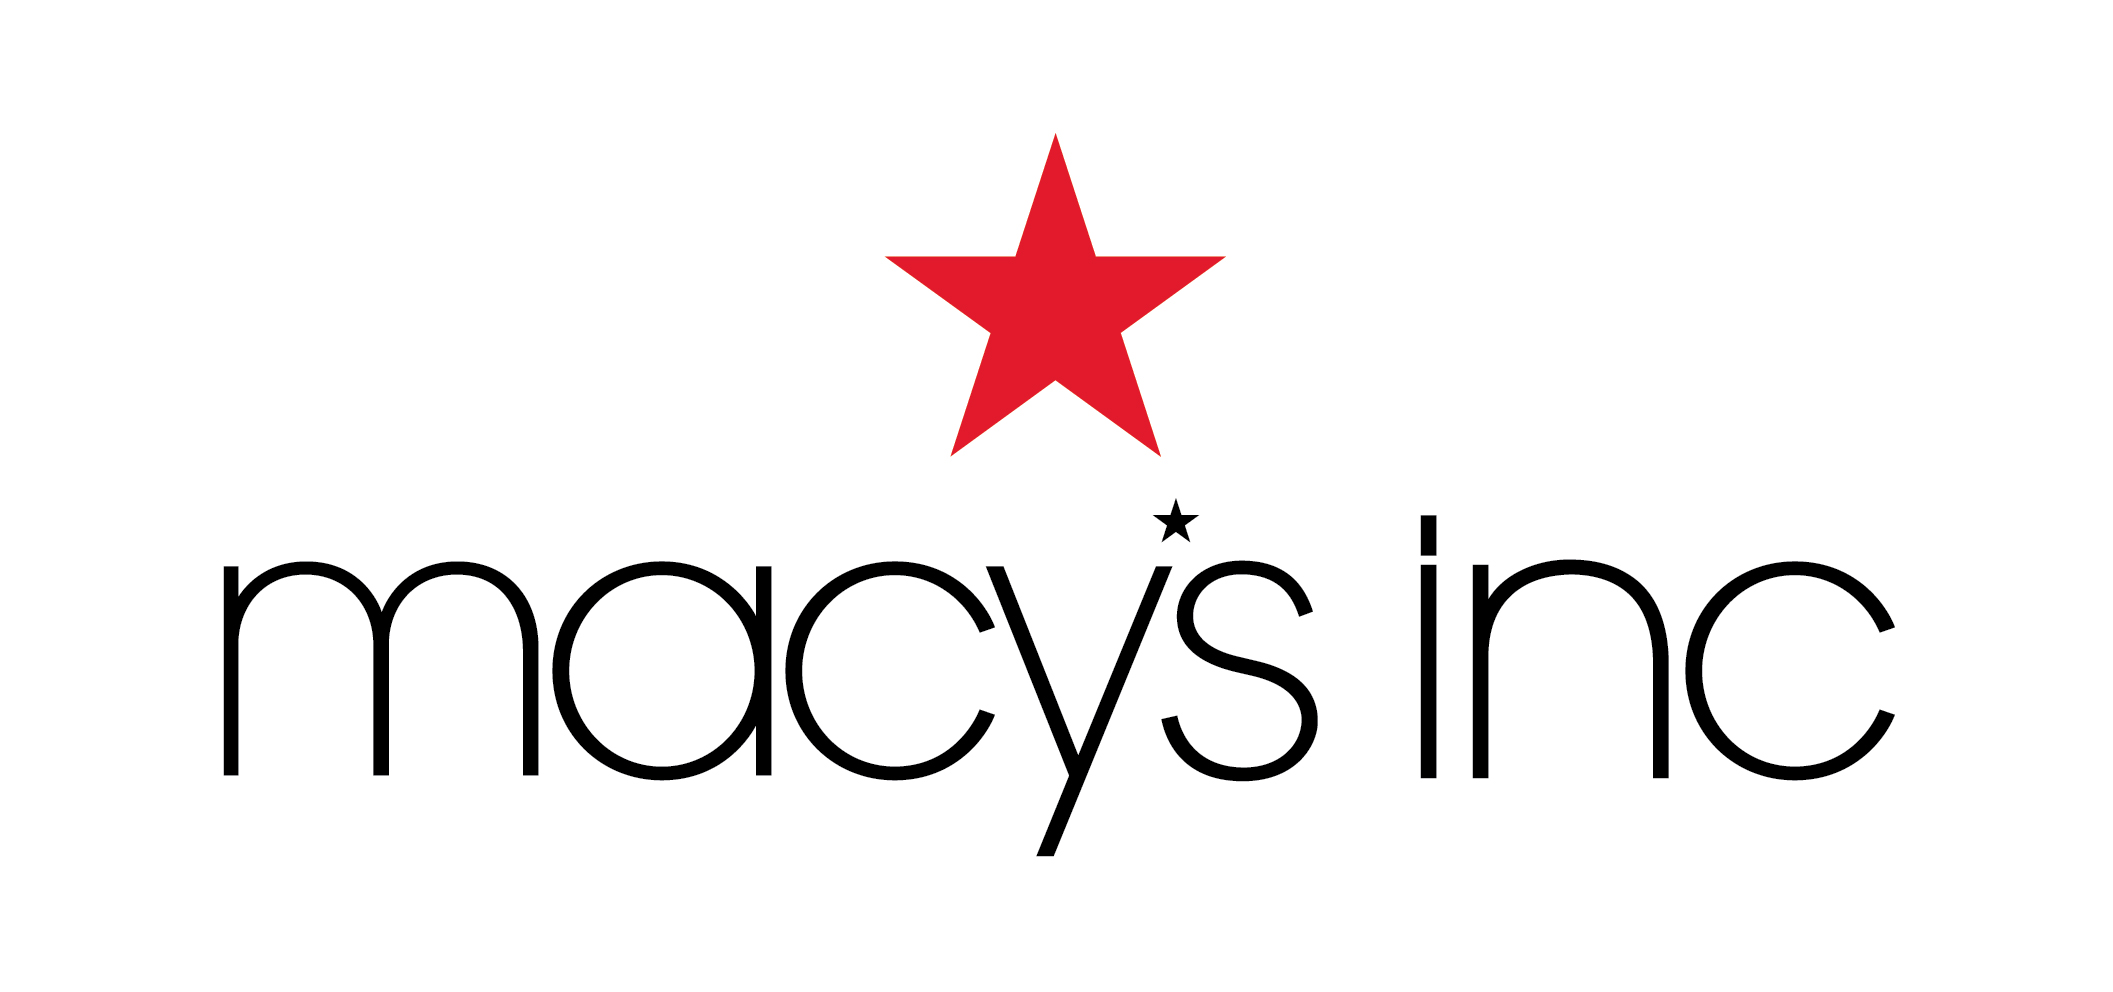 Macy's Logo - Garcia Joins Macy's As Chief Legal Officer | HomeWorld Business